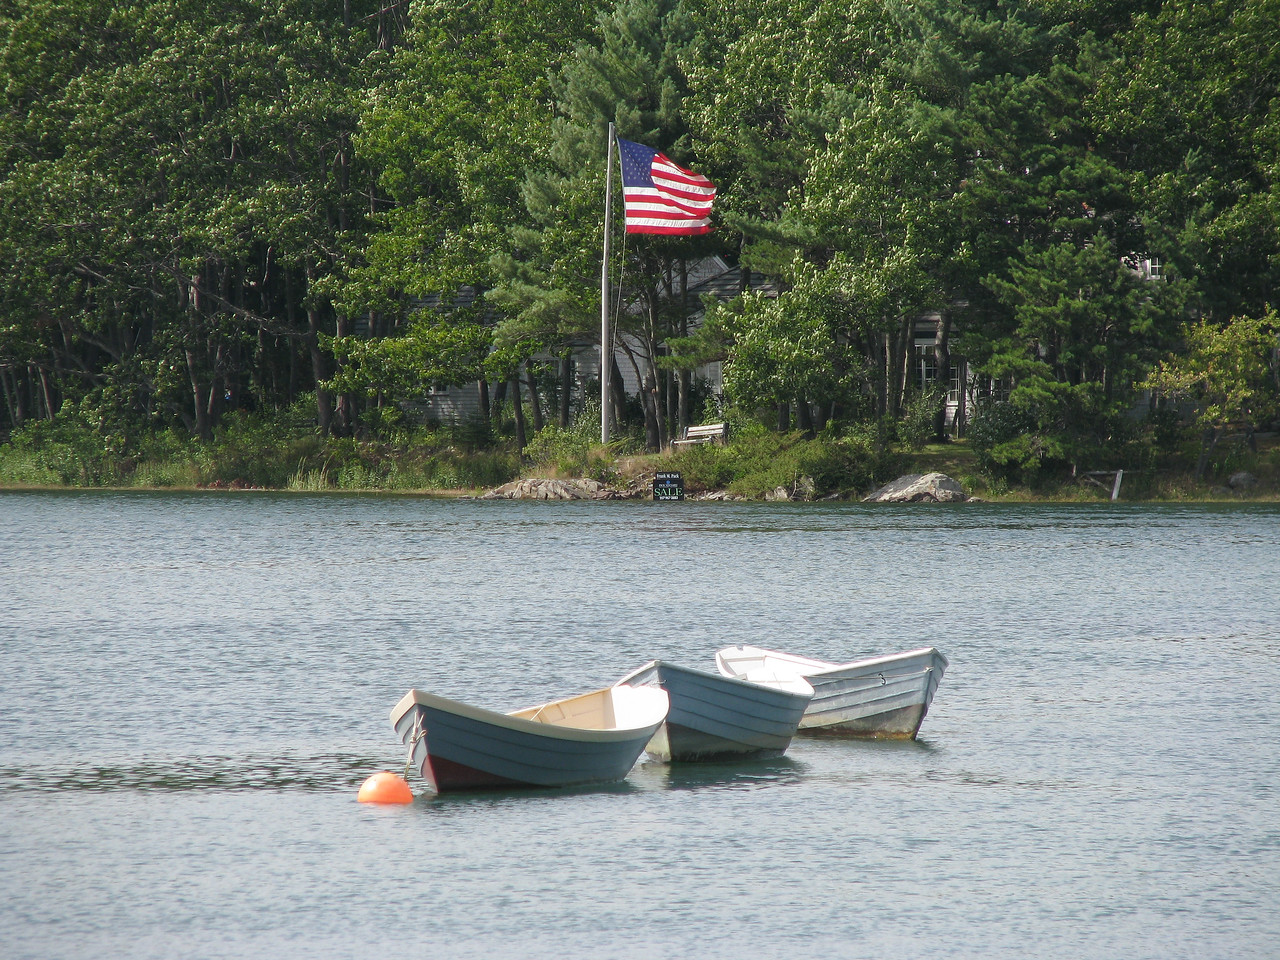 Dories at anchor in Kennebunkport.